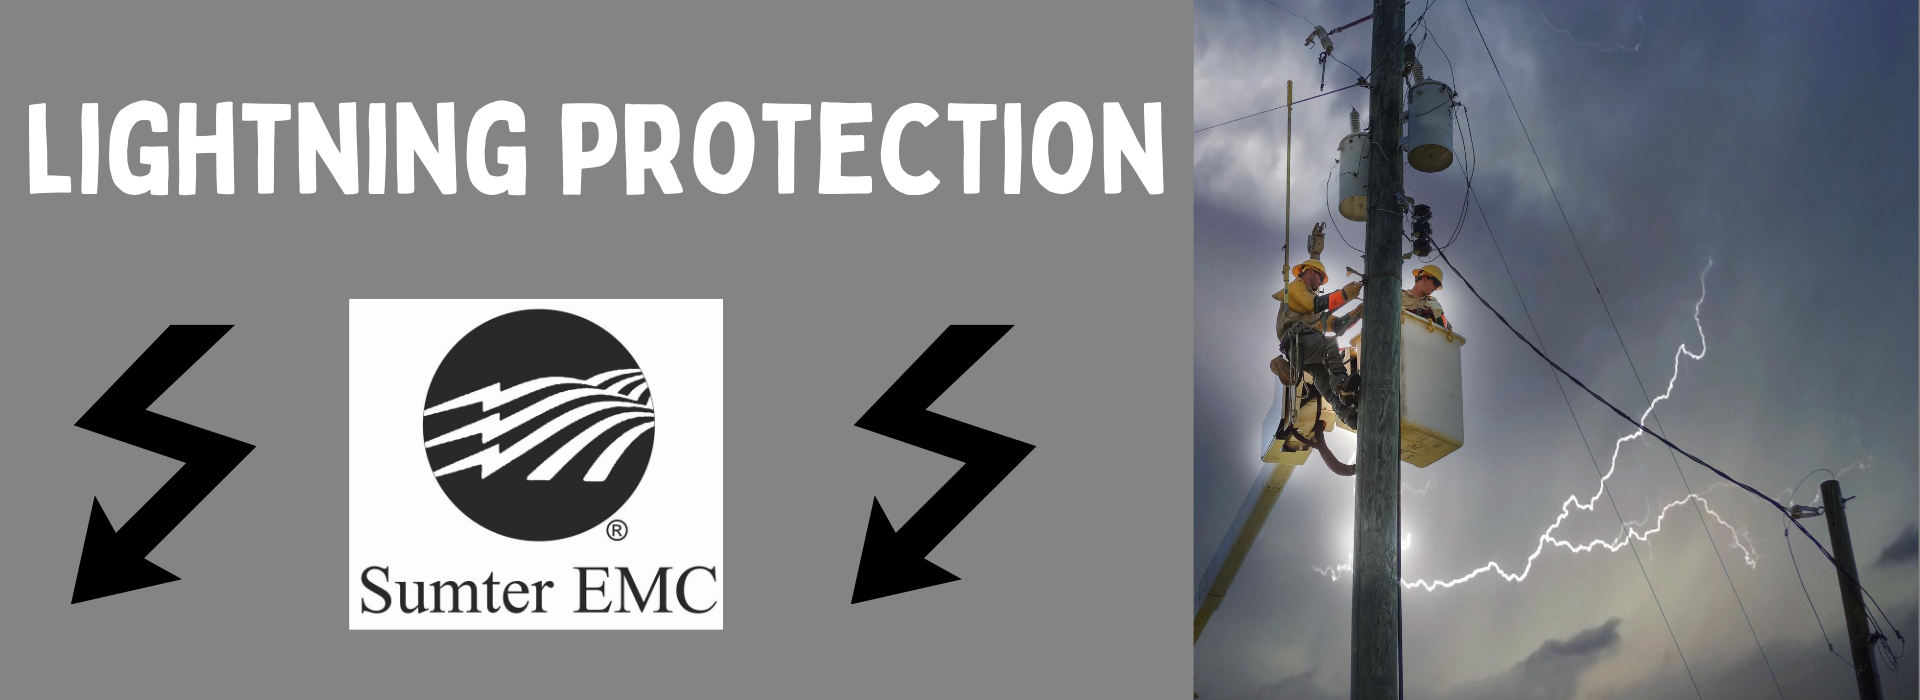 lightning protection.png